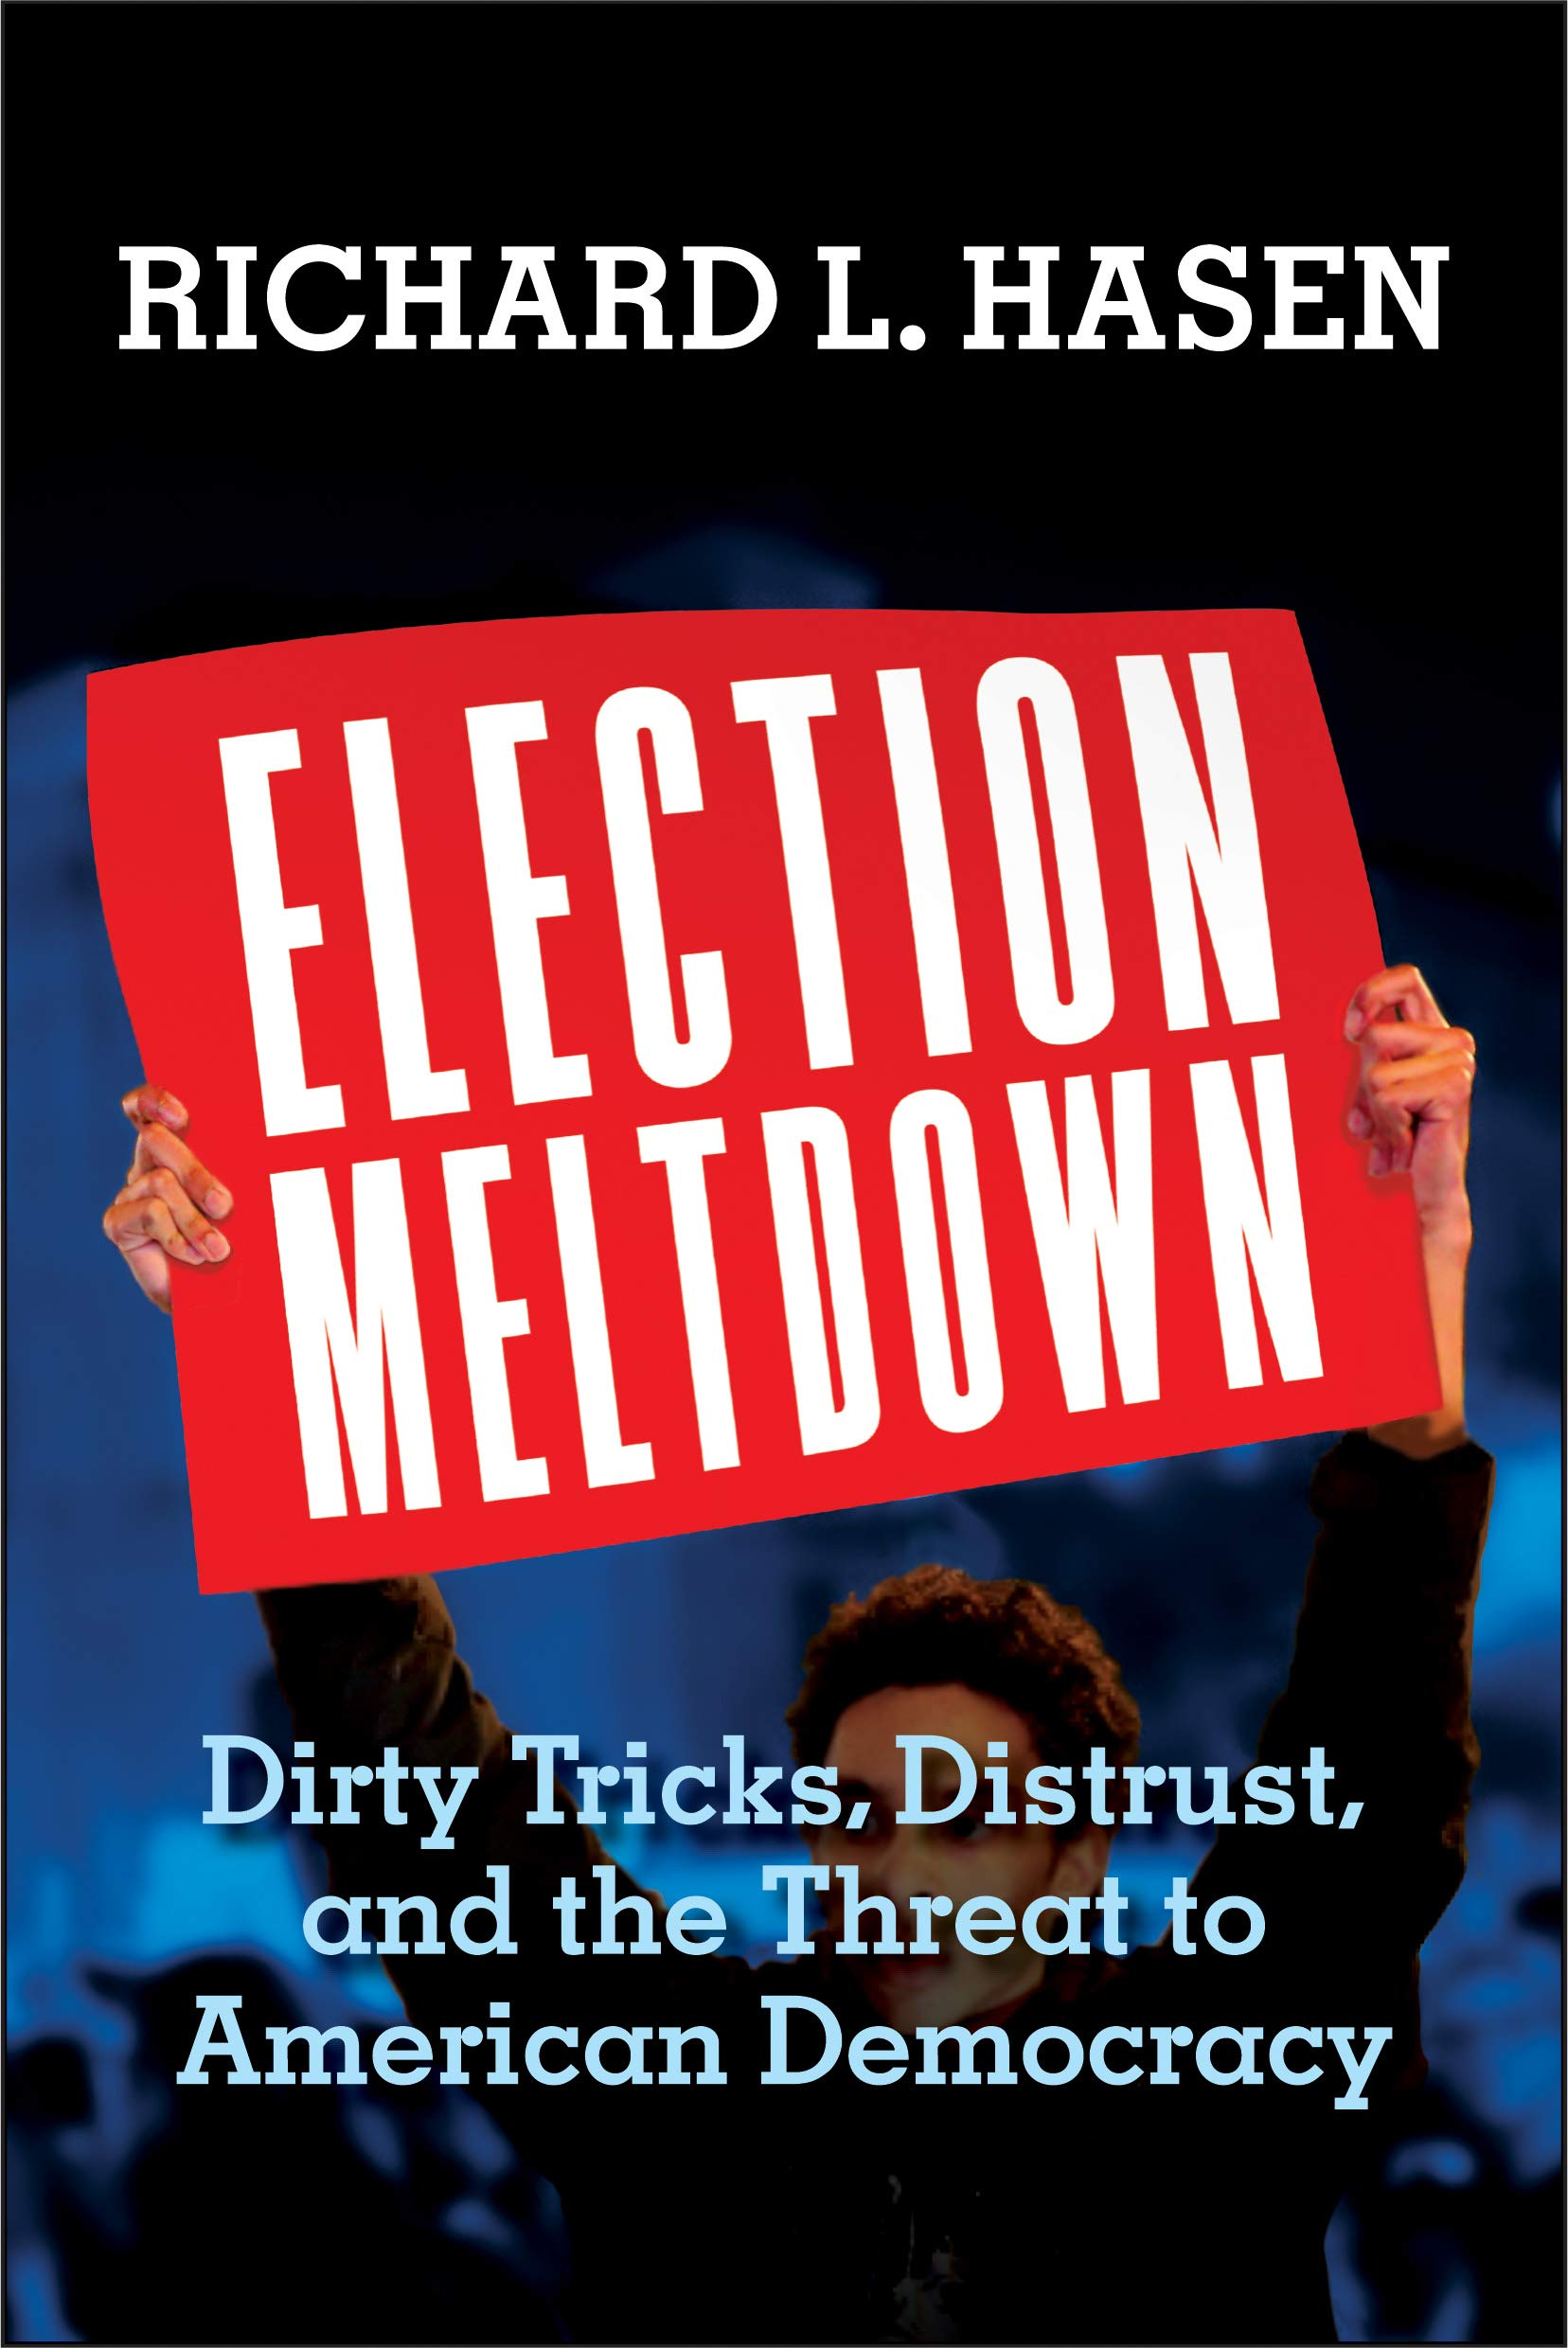 Richard L. Hasen. Election Meltdown: Dirty Tricks, Distrust, and the Threat to American Democracy.